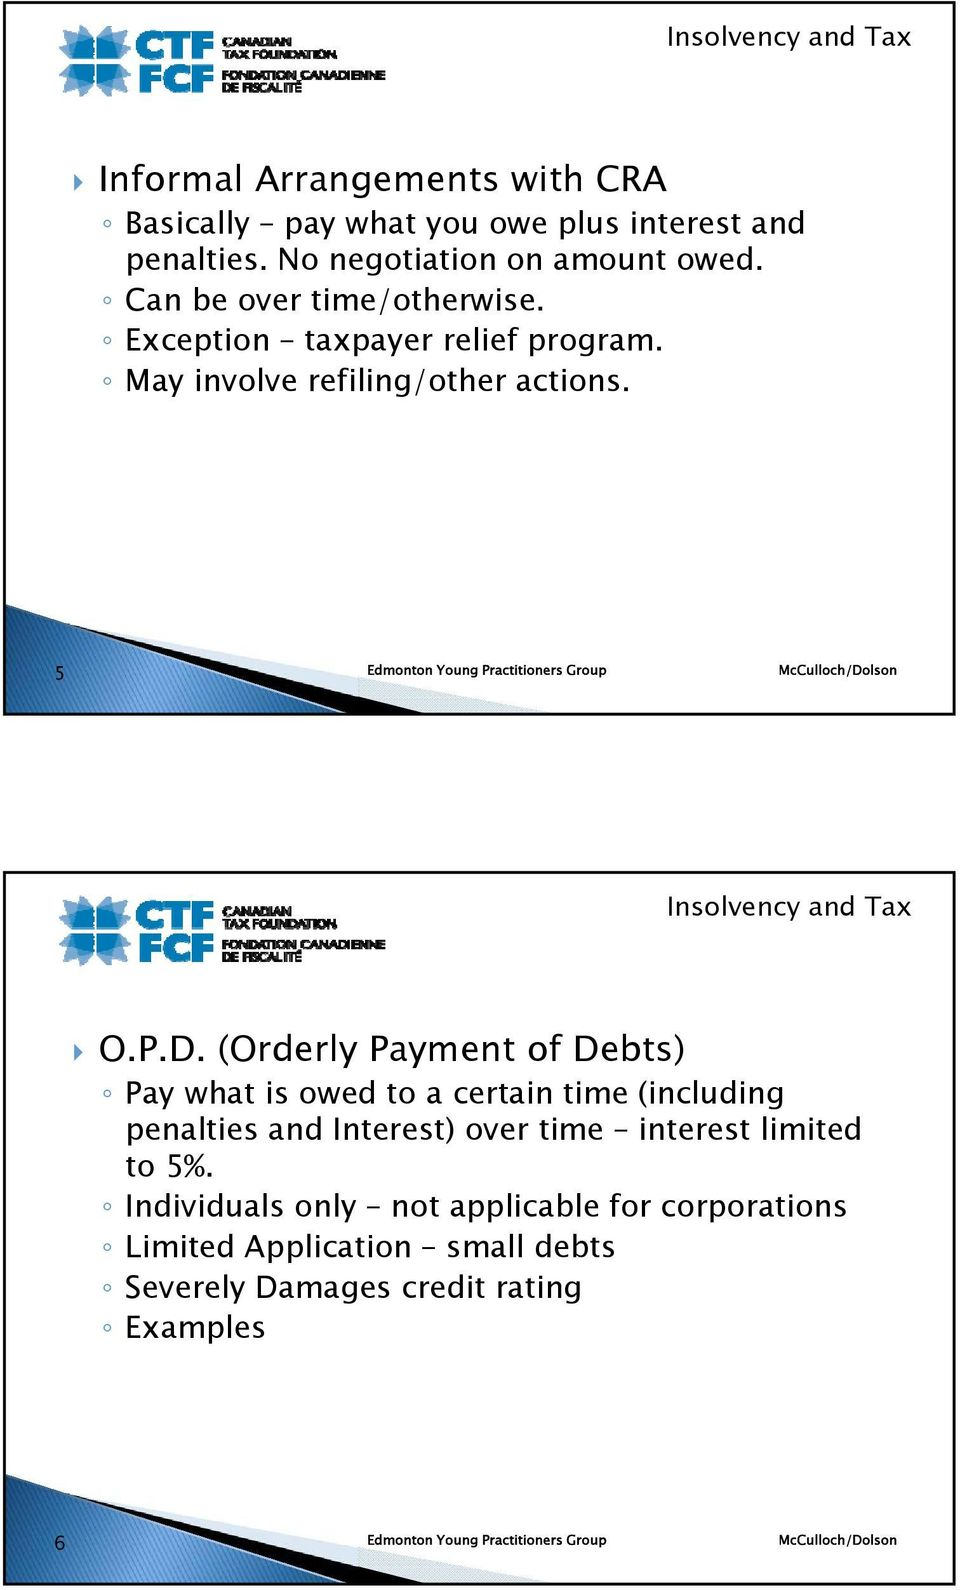 (Orderly Payment of Debts) Pay what is owed to a certain time (including penalties and Interest) over time interest